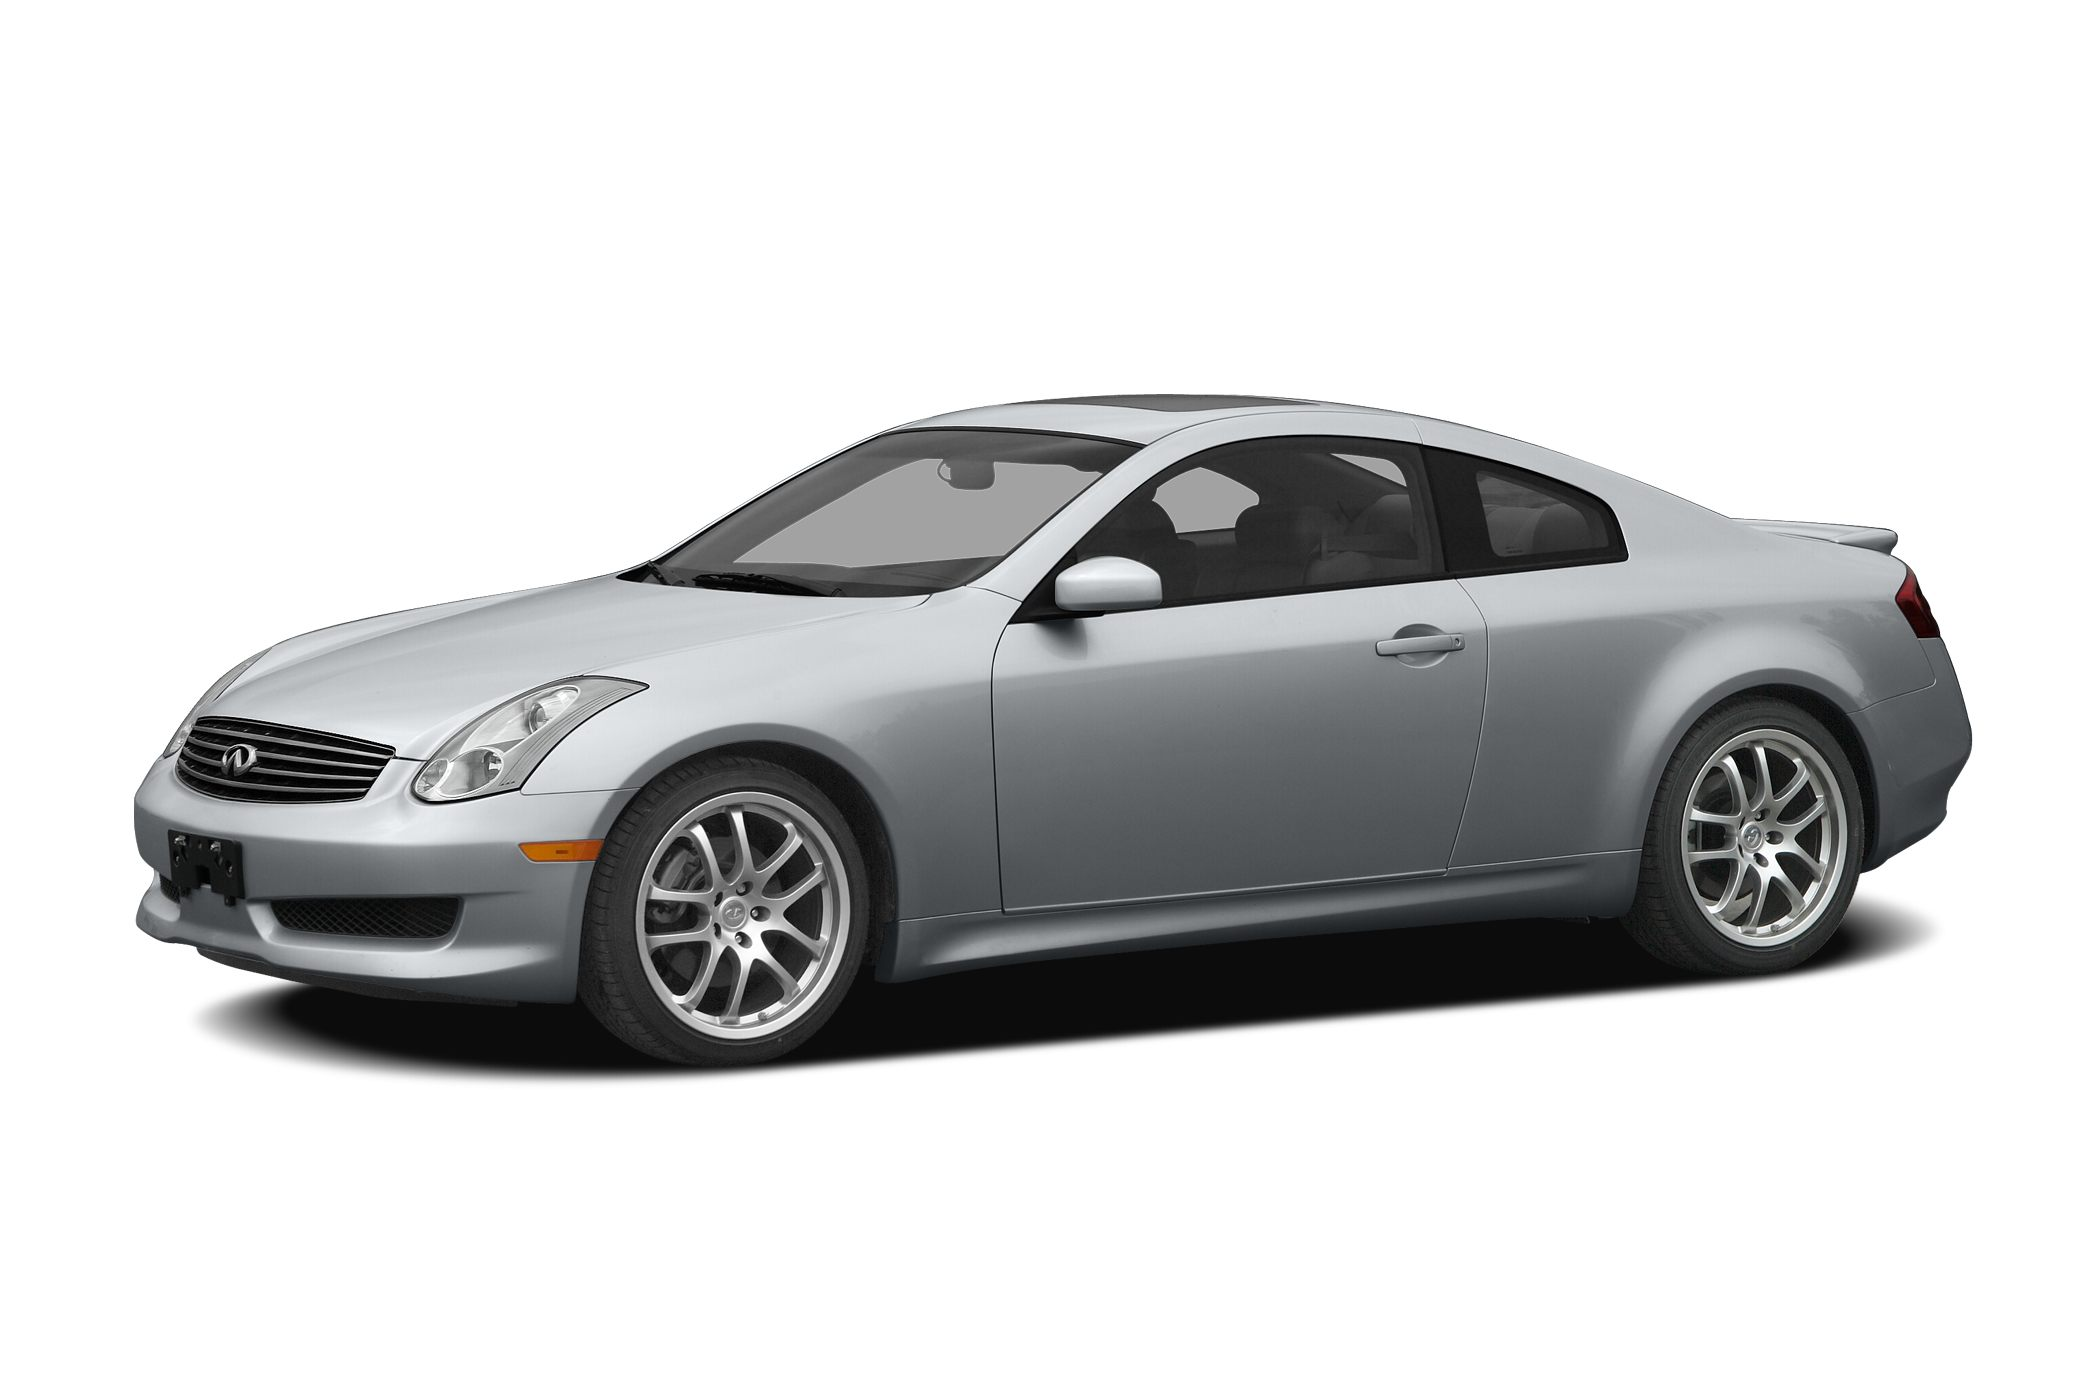 2007 INFINITI G35 Base w/6-Speed Manual 2dr Coupe Specs and Prices